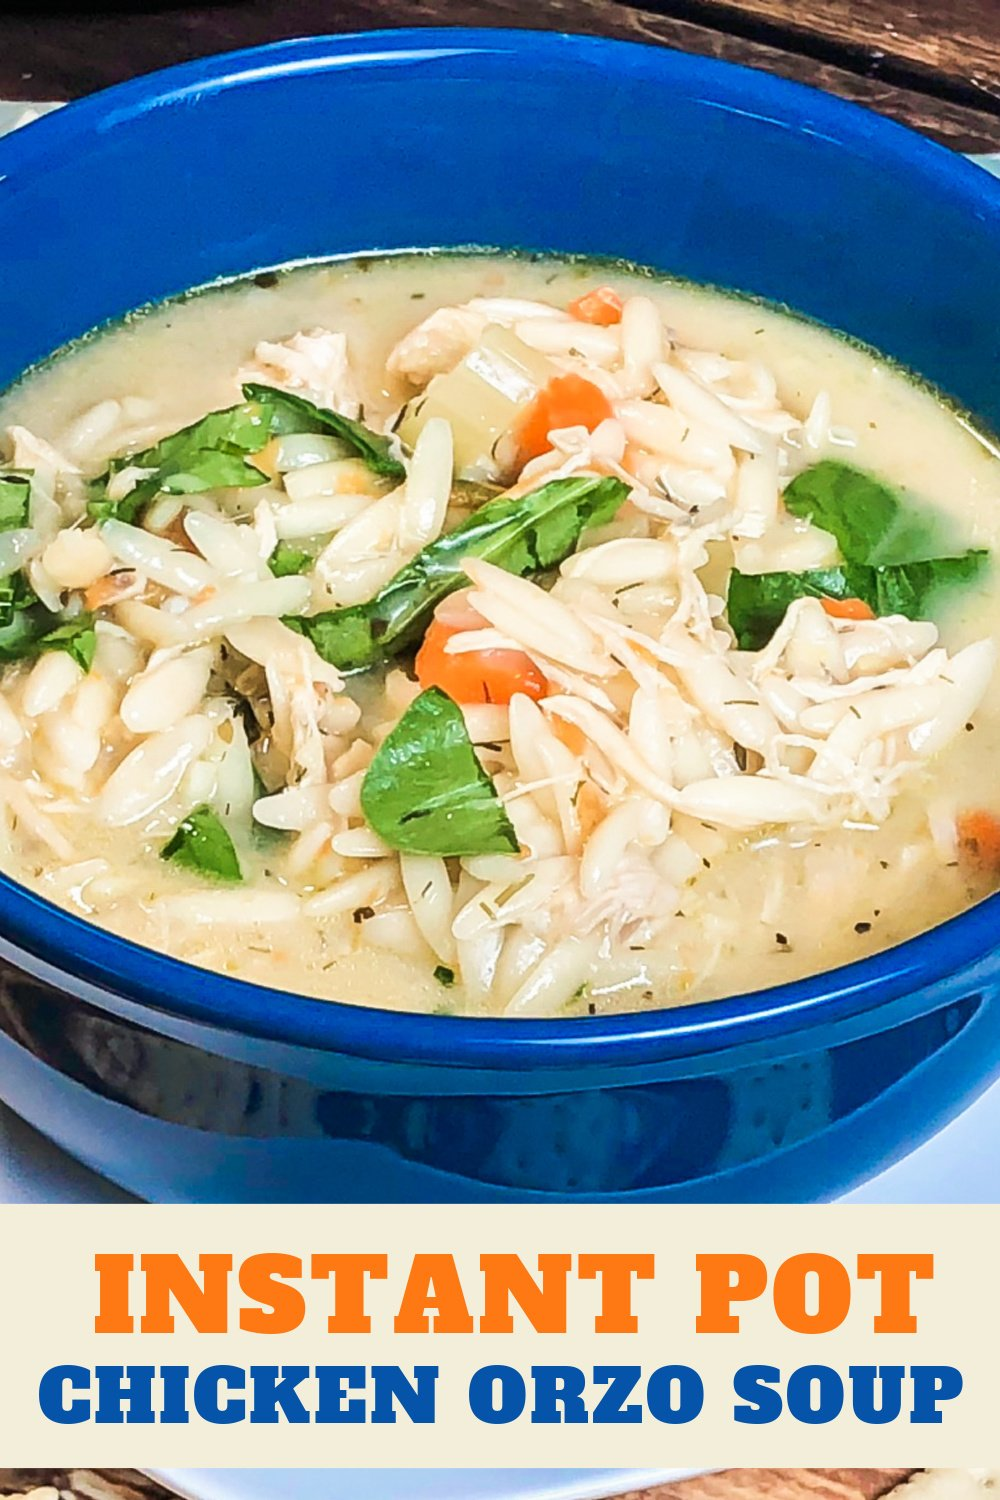 Chicken orzo soup in a blue bowl.